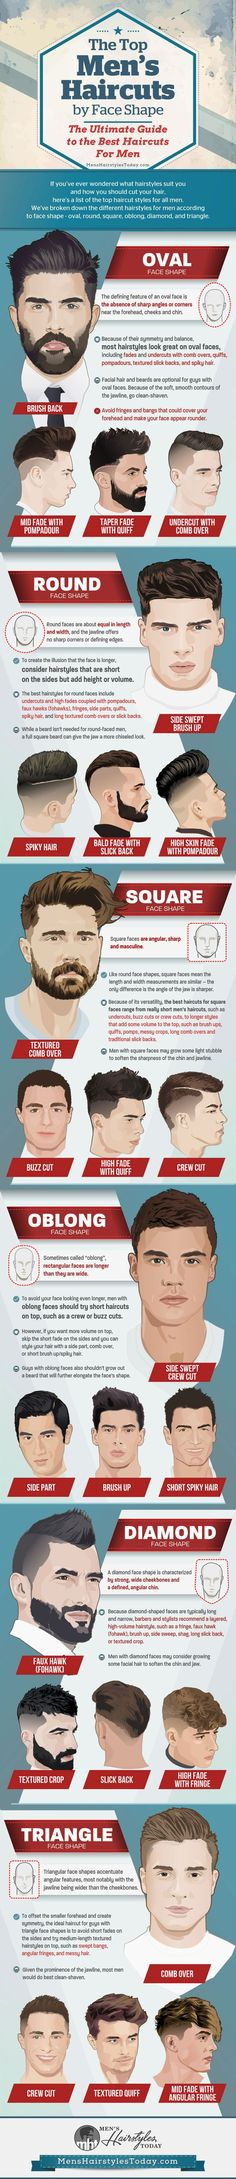 awesome How Do I Choose The Best Hairstyles For Me?...